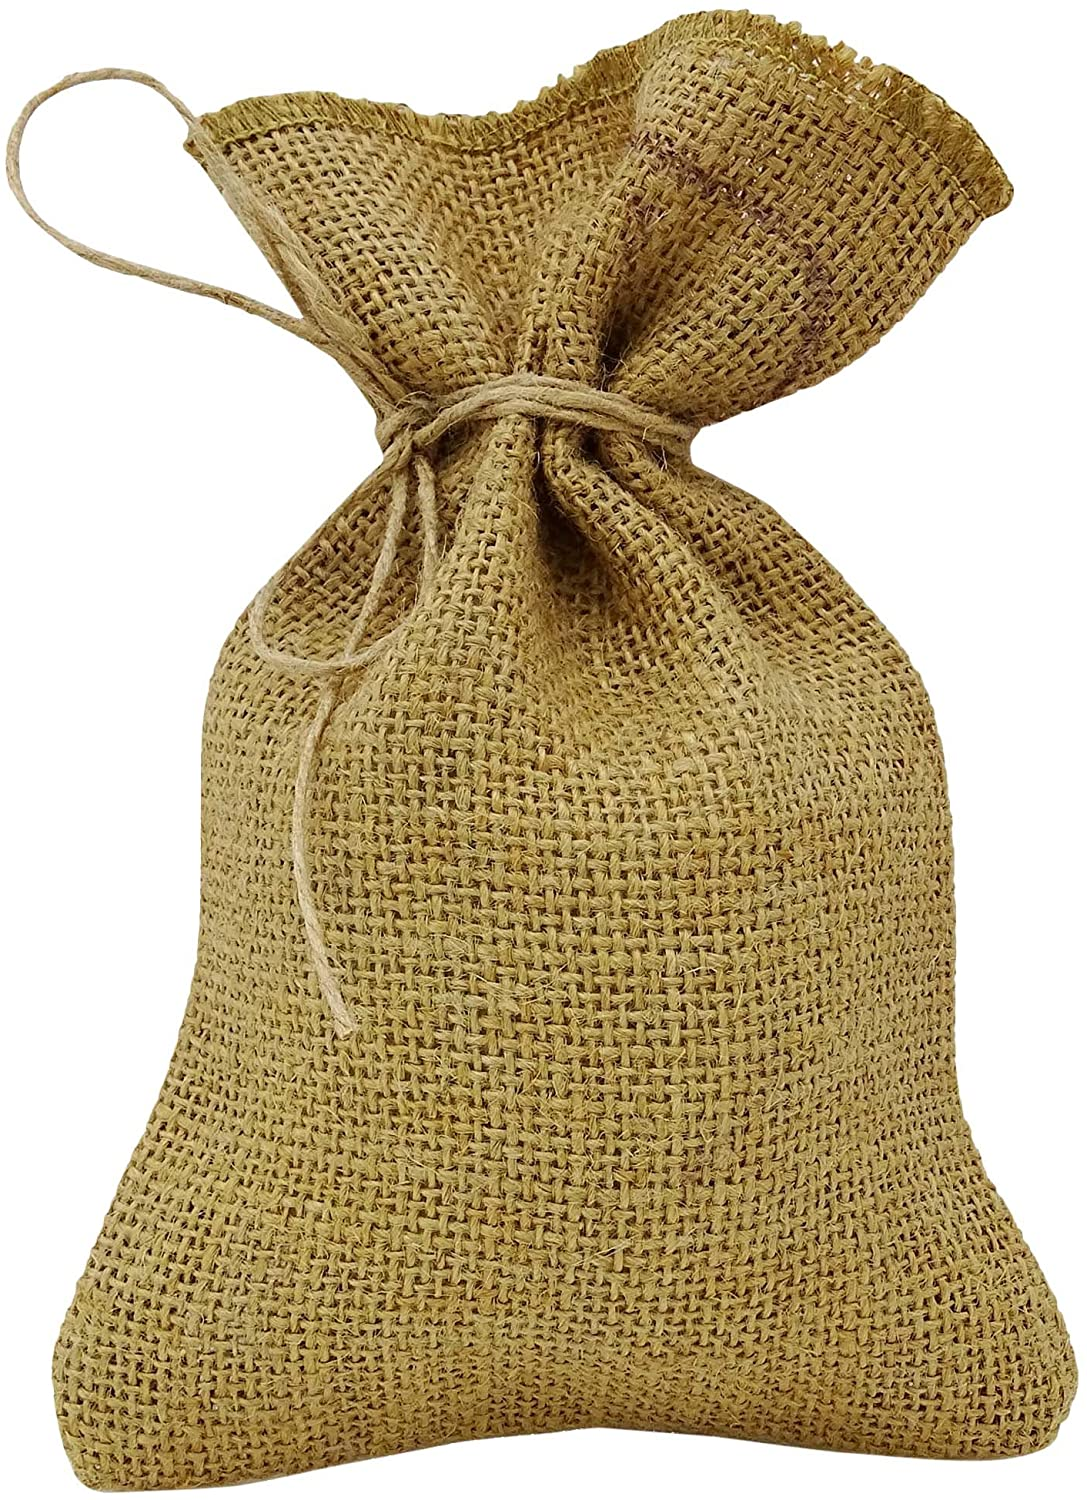 Darling Souvenir 50 Natural Rustic Jute Drawstring Favor Bag Wedding Party Thank You Small Gift Sack Pouches 3